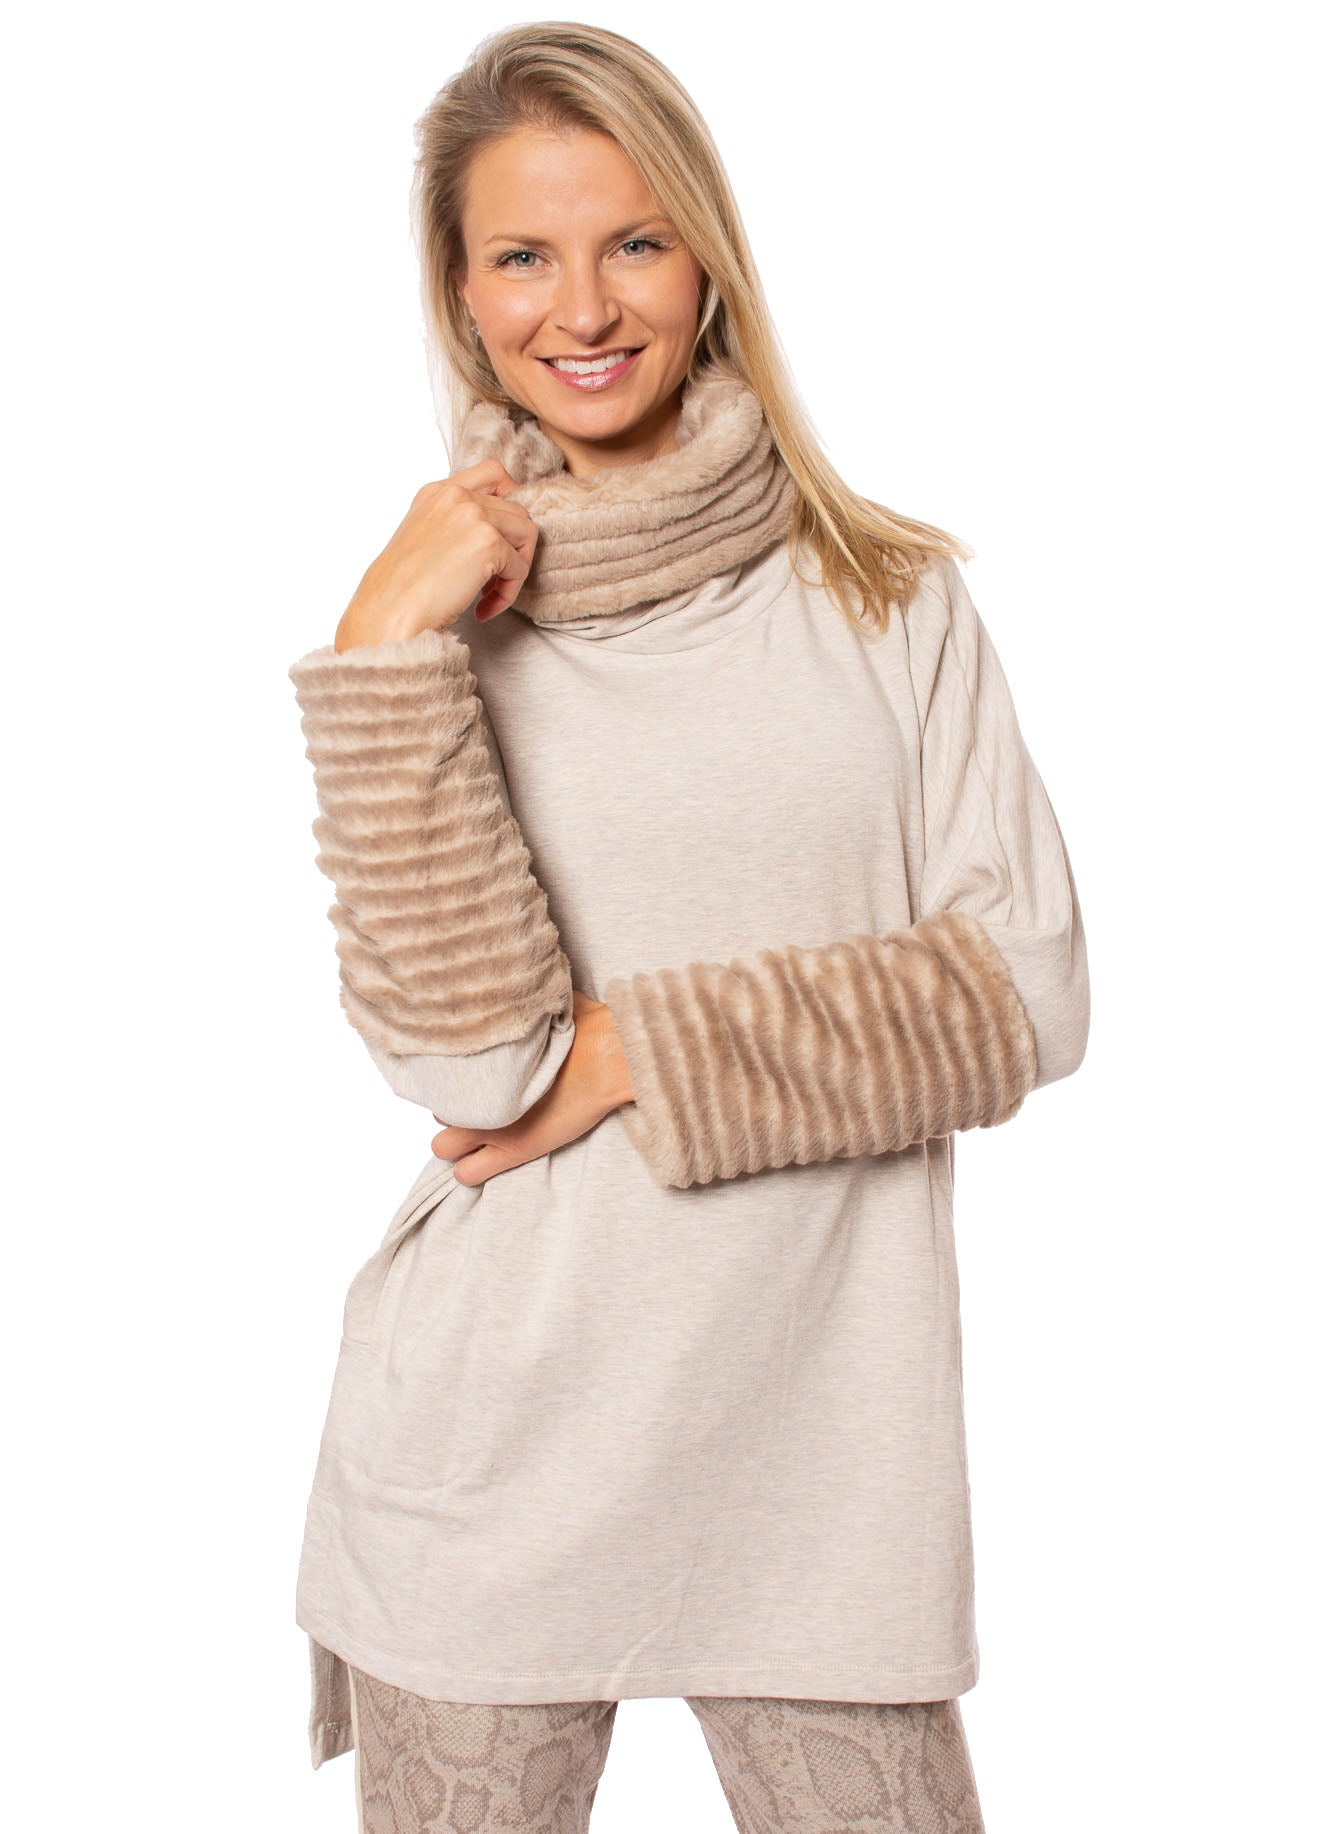 Capote - Tunic Sweatshirt W/Faux Cowl Neck And Cuffs W/Pockets (STELLA94, Oatmeal)